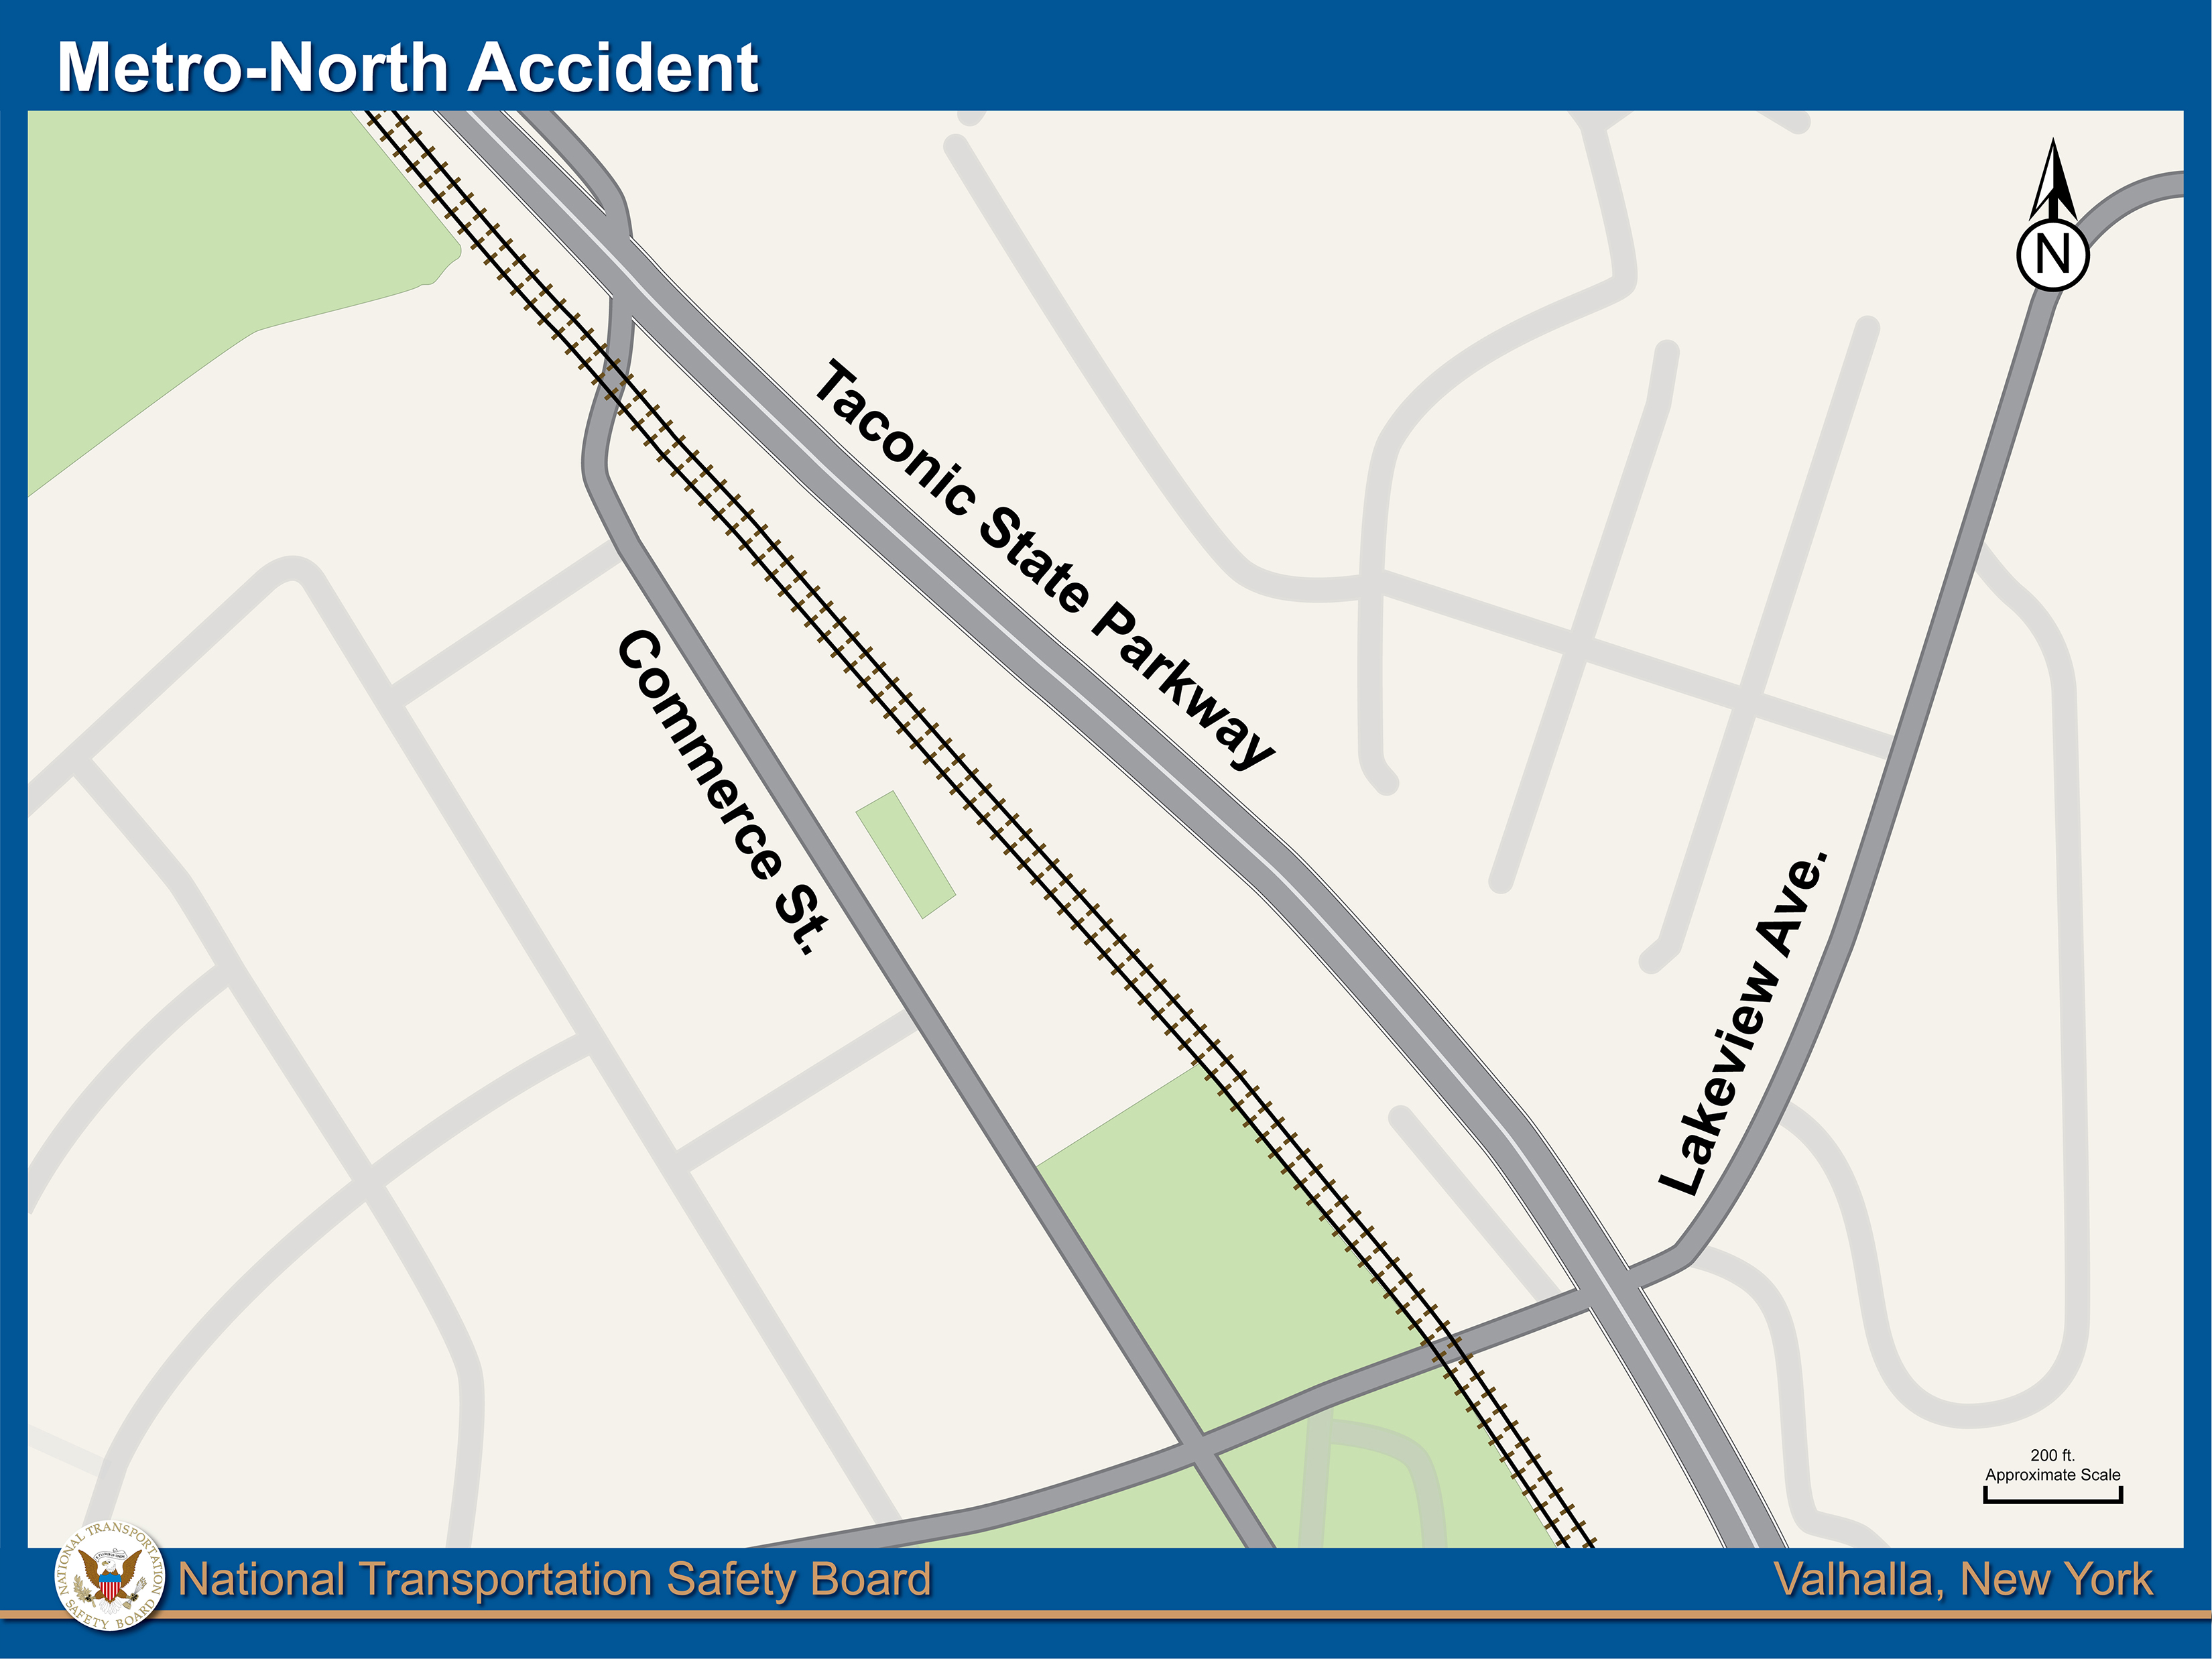 Map of accident area